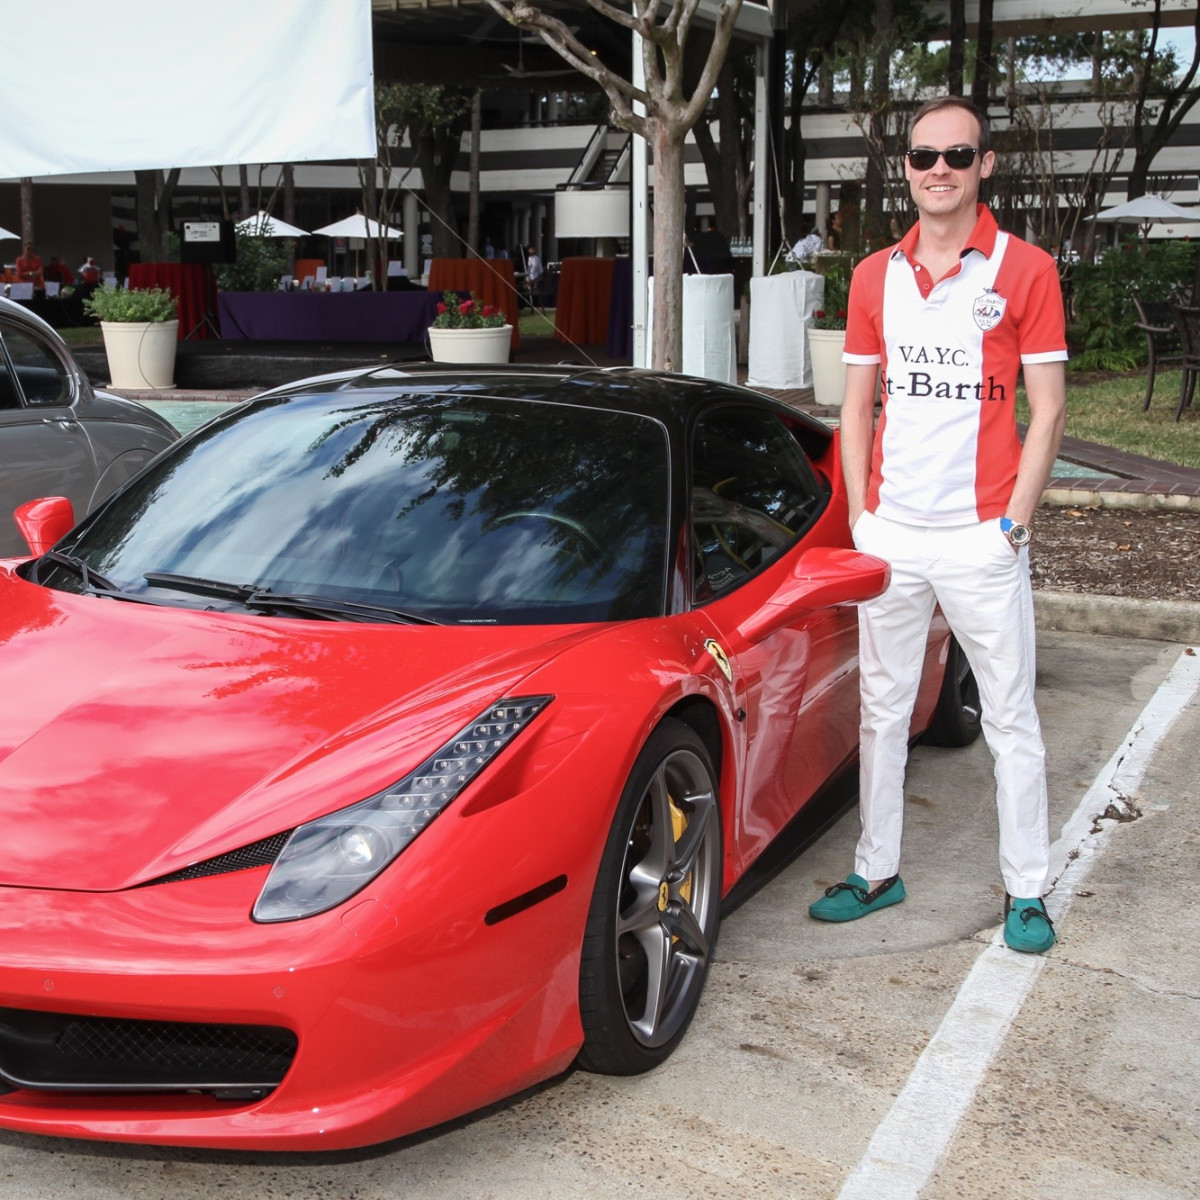 Kevin Sustald with classic car at Risotto Festival